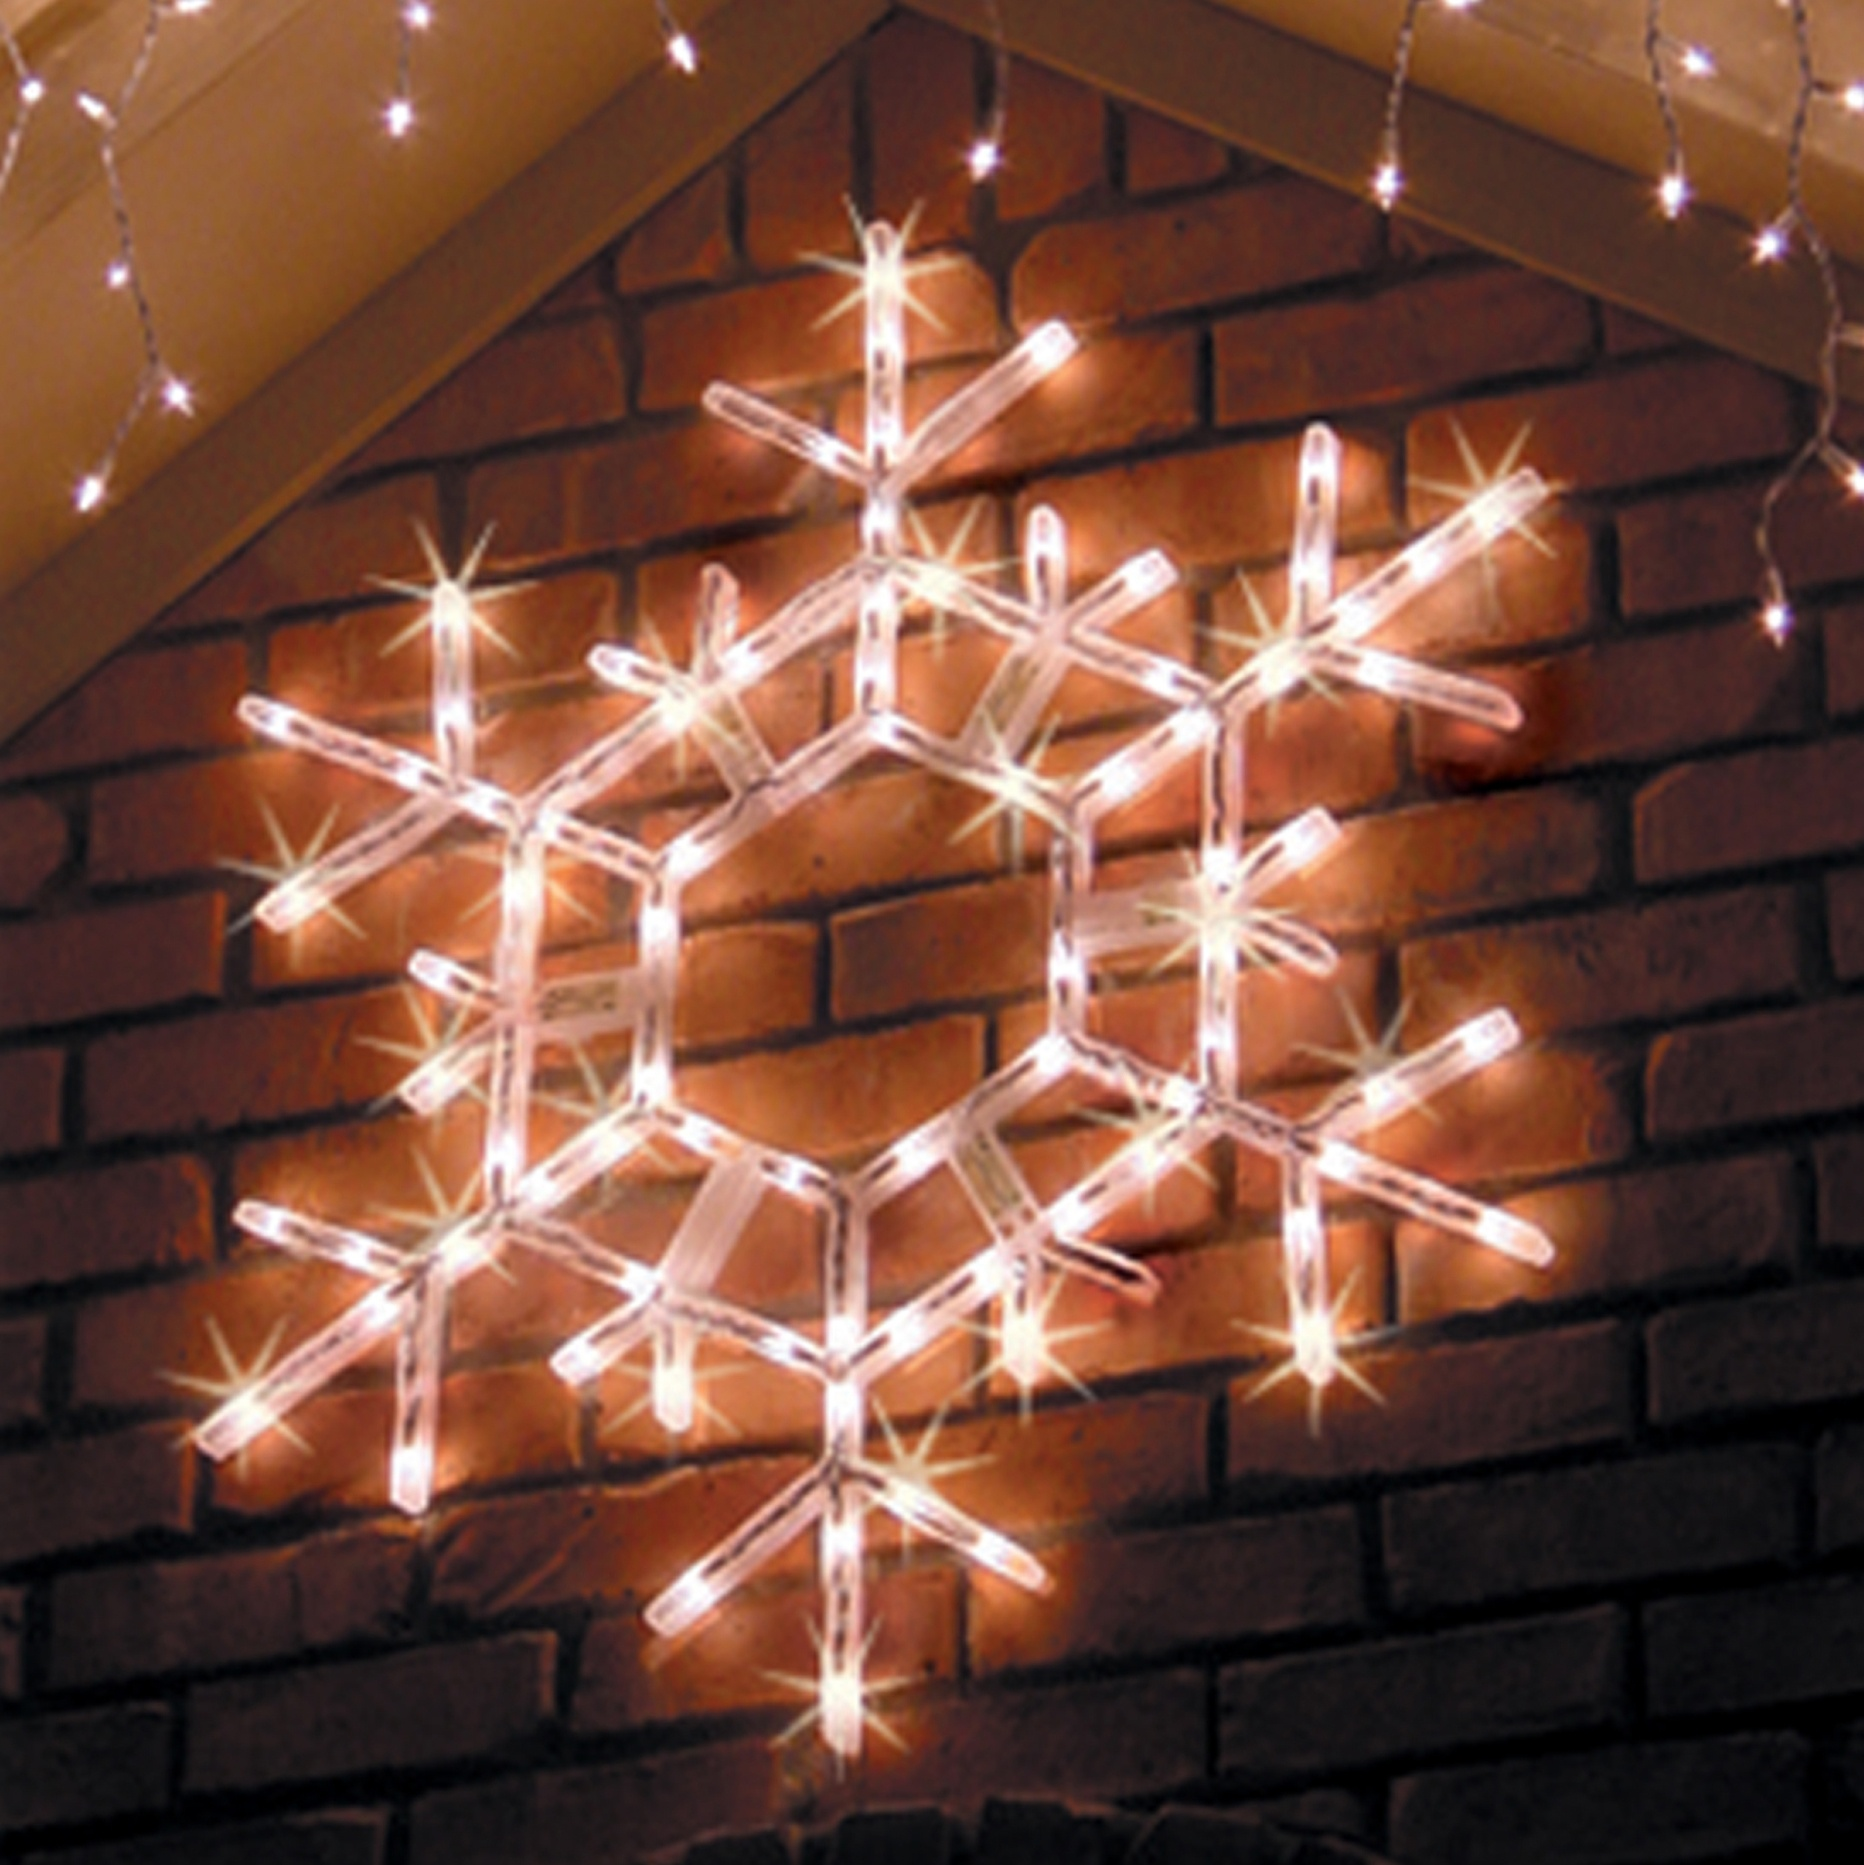 Lighted snowflakes stars yard envy for Outdoor light up ornaments